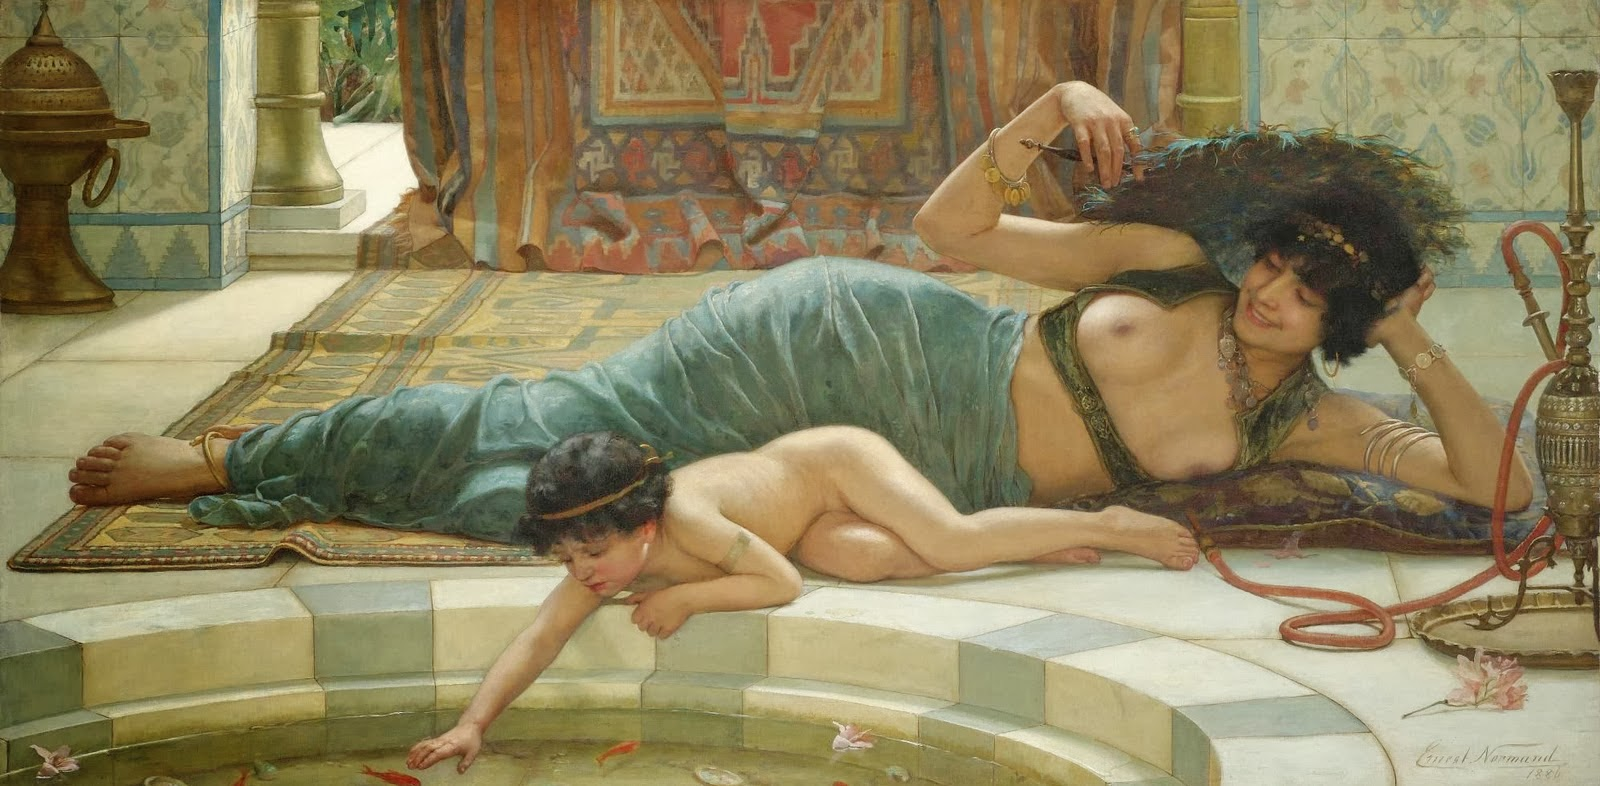 http://upload.wikimedia.org/wikipedia/commons/8/83/Ernest_Normand_-_Playthings.jpg